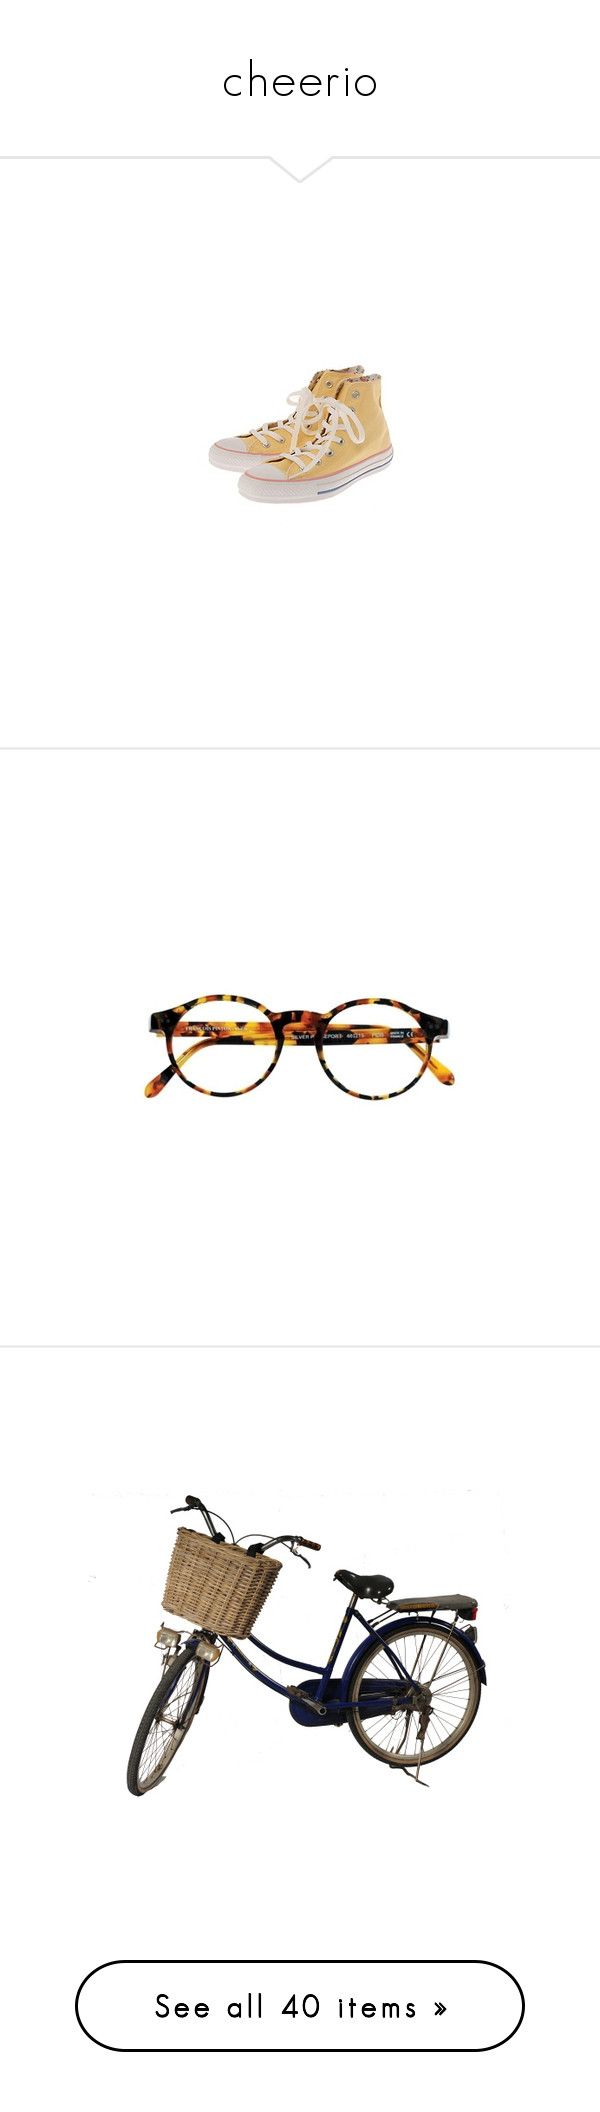 """cheerio"" by kampow ❤ liked on Polyvore featuring shoes, sneakers, converse, footwear, filler, accessories, eyewear, eyeglasses, glasses and sunglasses"